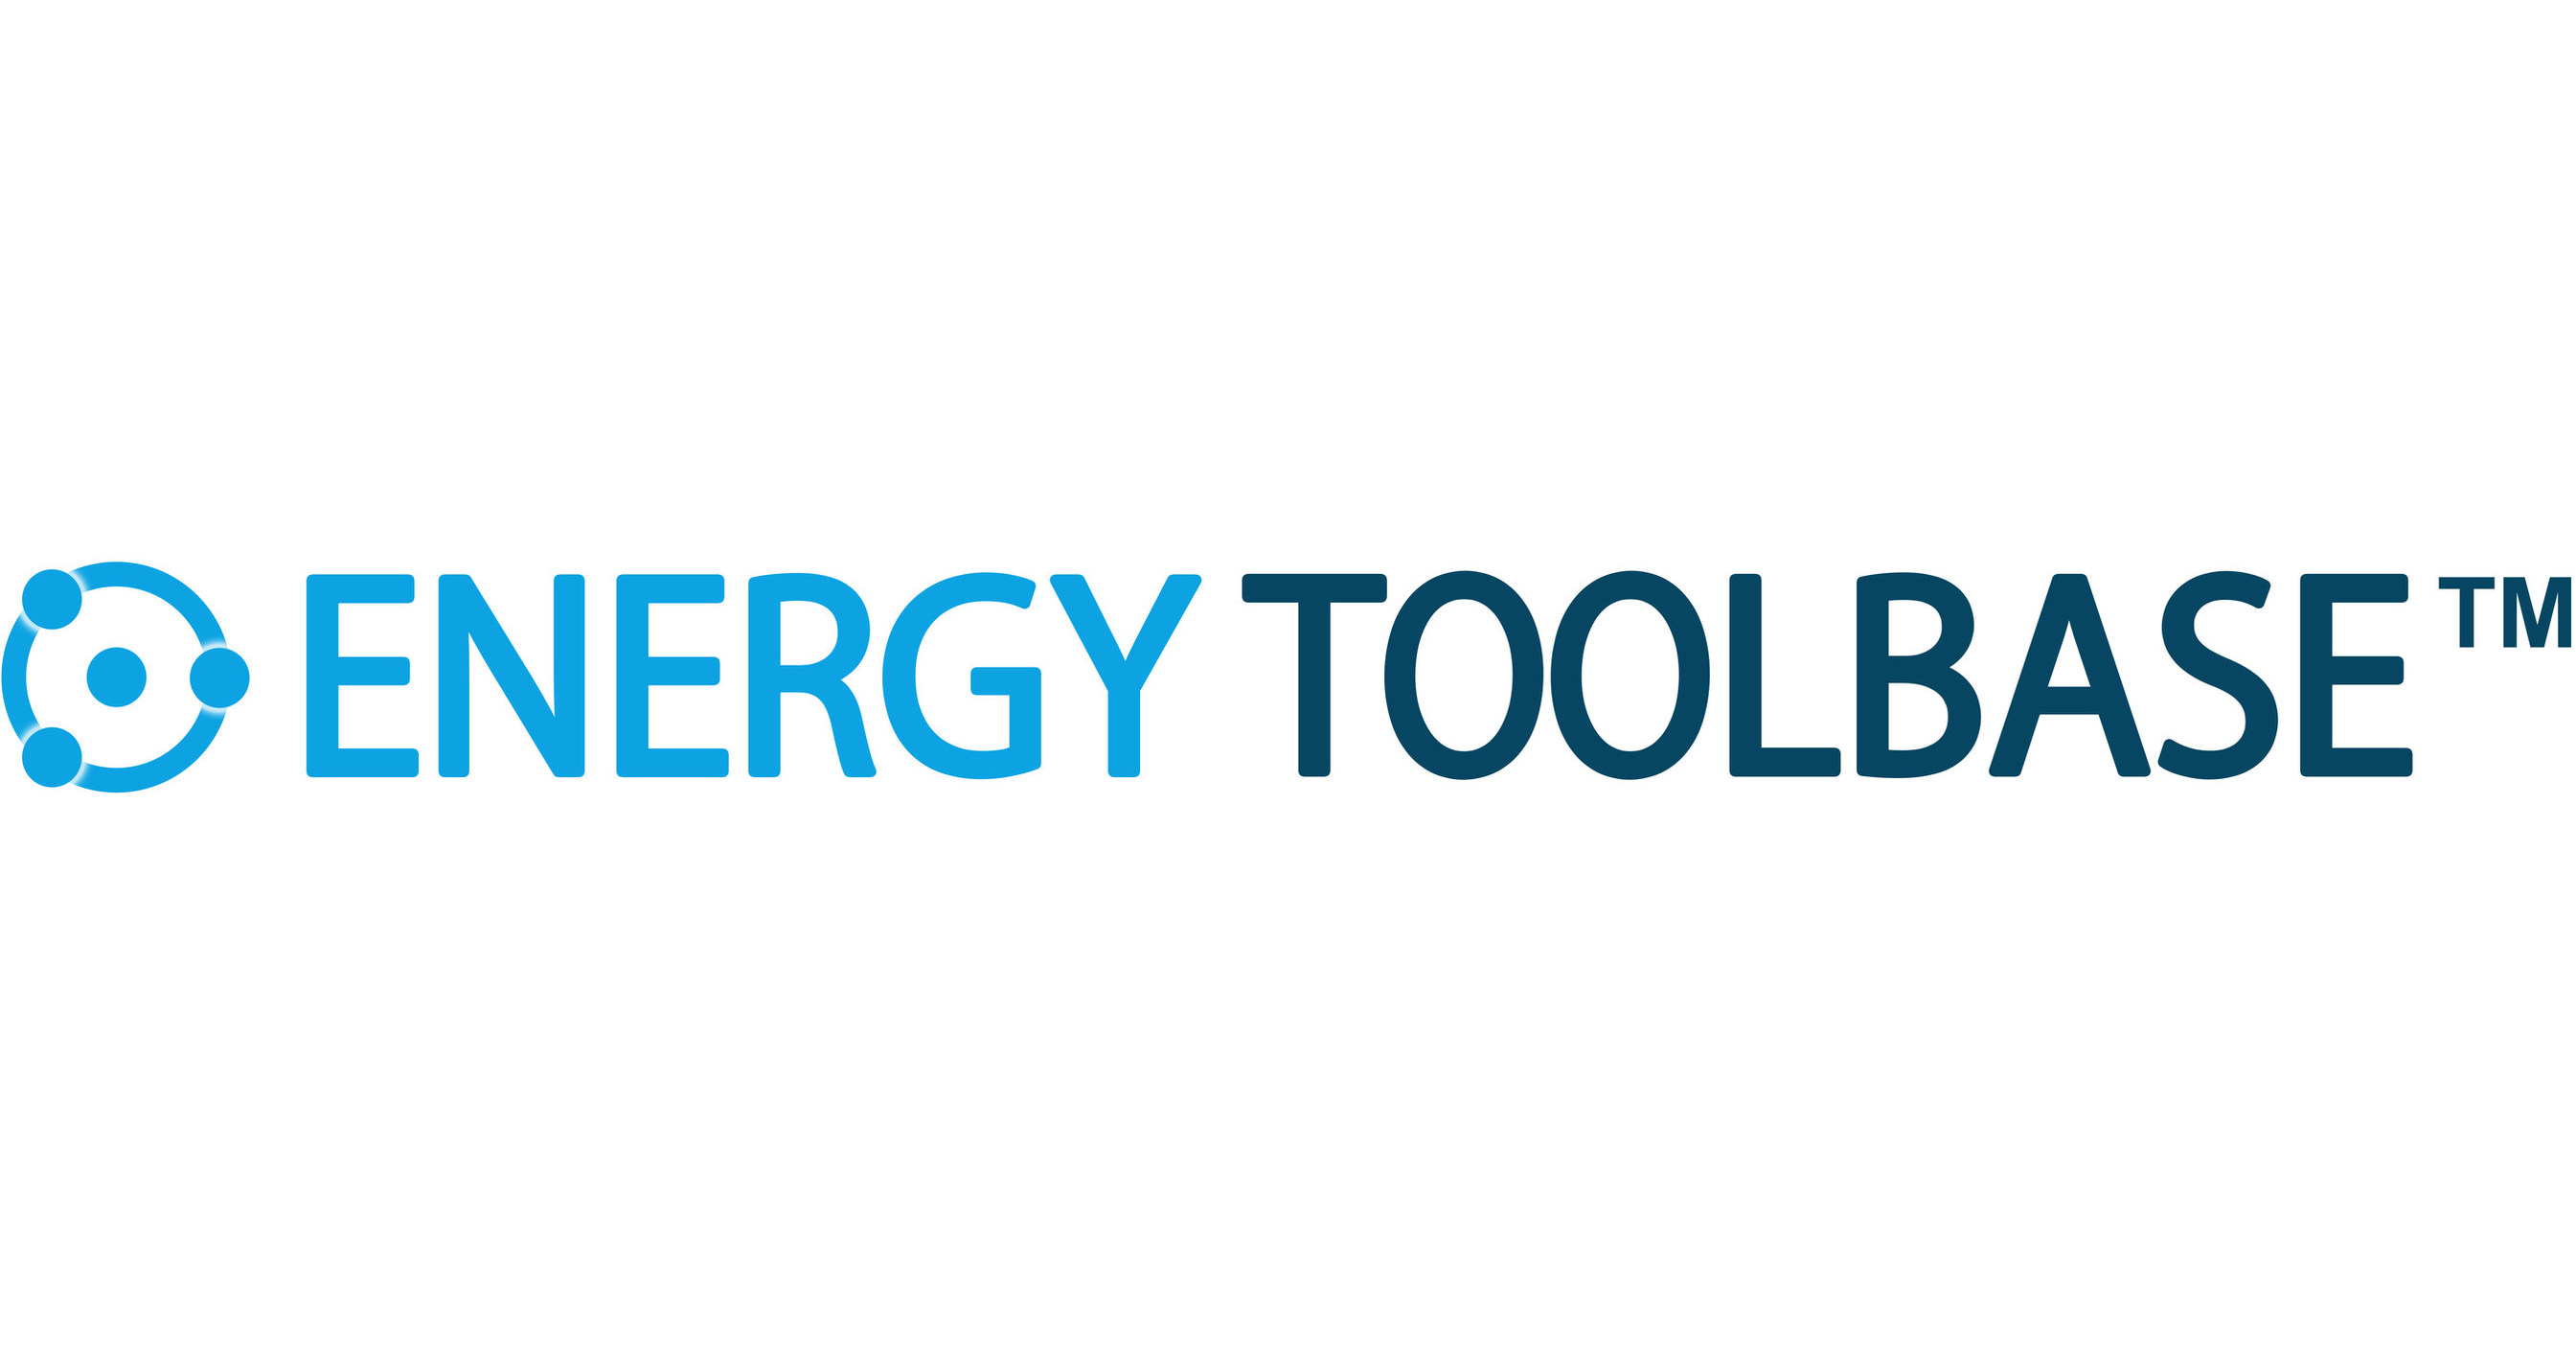 Energy Toolbase Integrates Software w/ BYD's Batteries